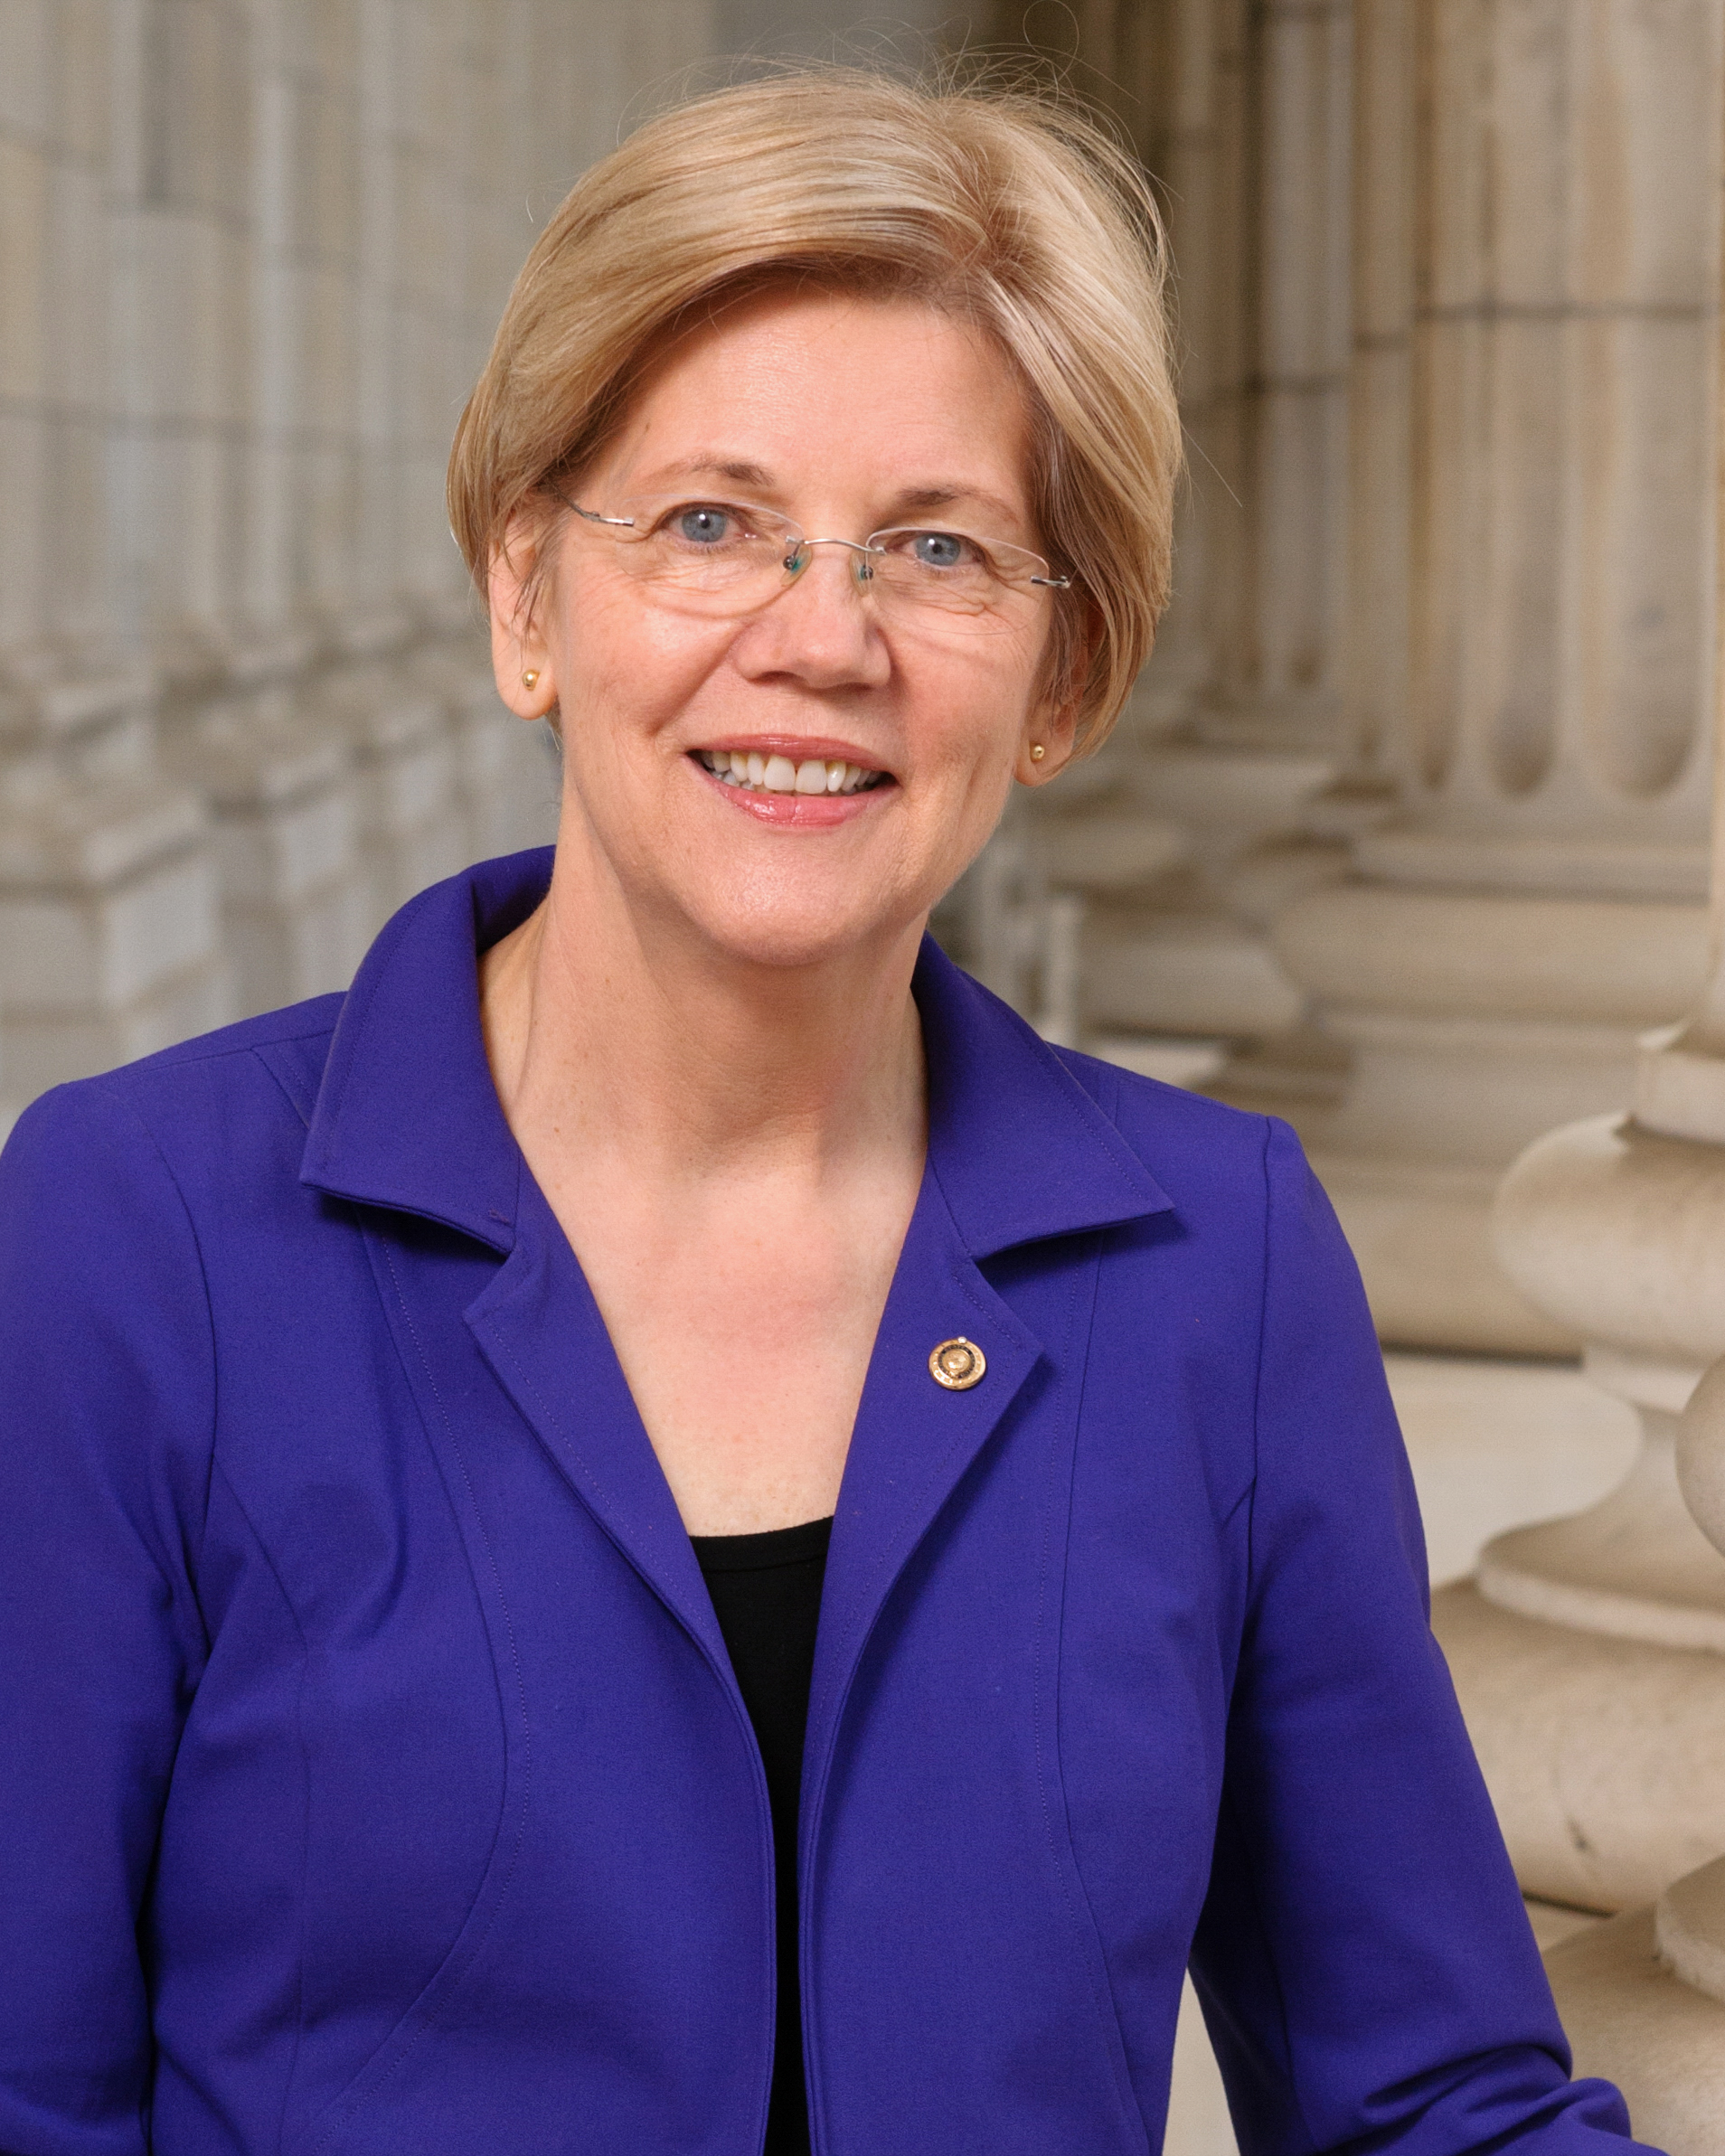 Elizabeth Warren Headshot